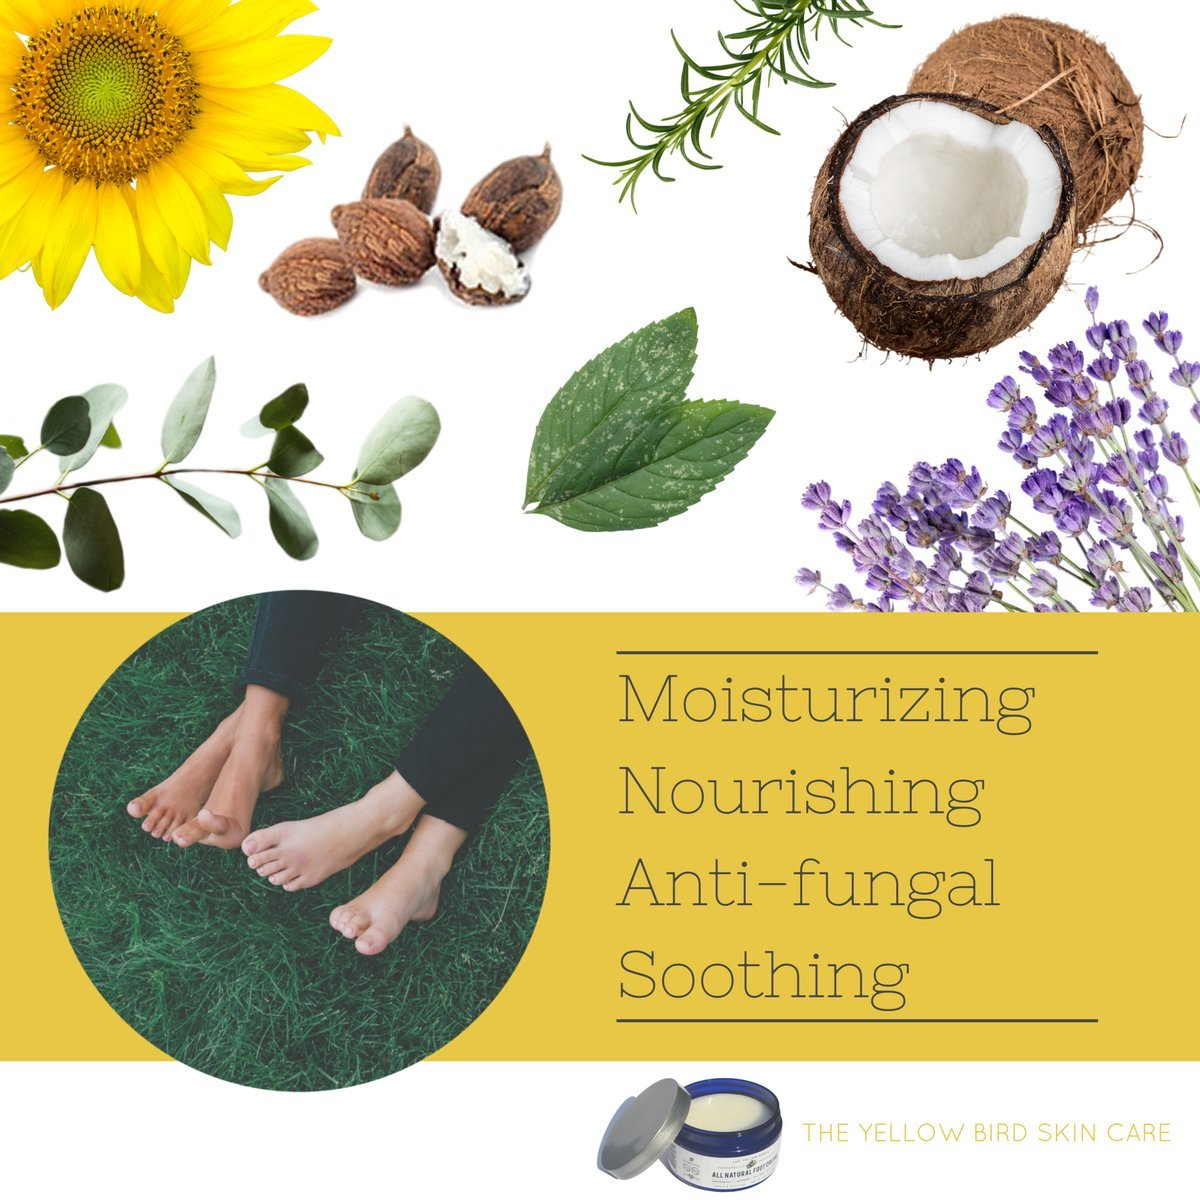 All Natural Antifungal Foot Cream. Moisturizing Organic Relief for Dry Cracked Heels, Callused Feet, Athletes Foot. Best Therapeutic Grade Essential Oils: Peppermint, Lavender, Eucalyptus, Tea Tree. by The Yellow Bird (Image #3)